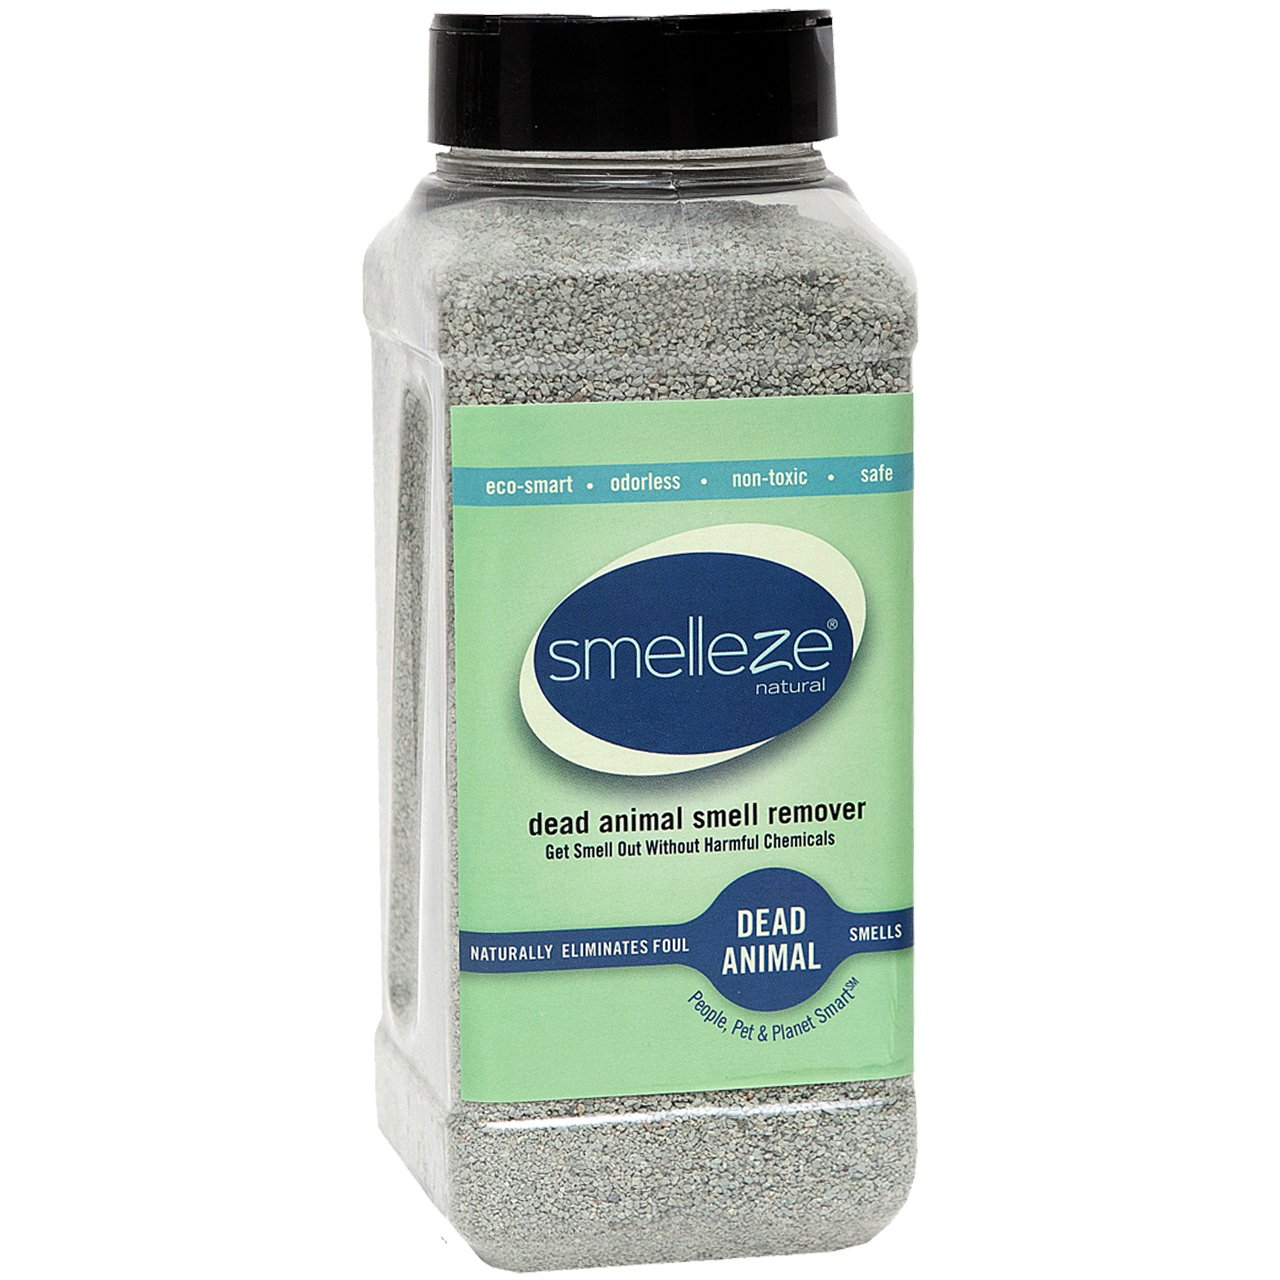 SMELLEZE Natural Dead Animal Odor Removal Granules- 2 lbs.: Eliminate Dead Rat, Mice, Squirrel, Chipmunk, Raccoon & Bat Smell. Safe for Outdoor Use